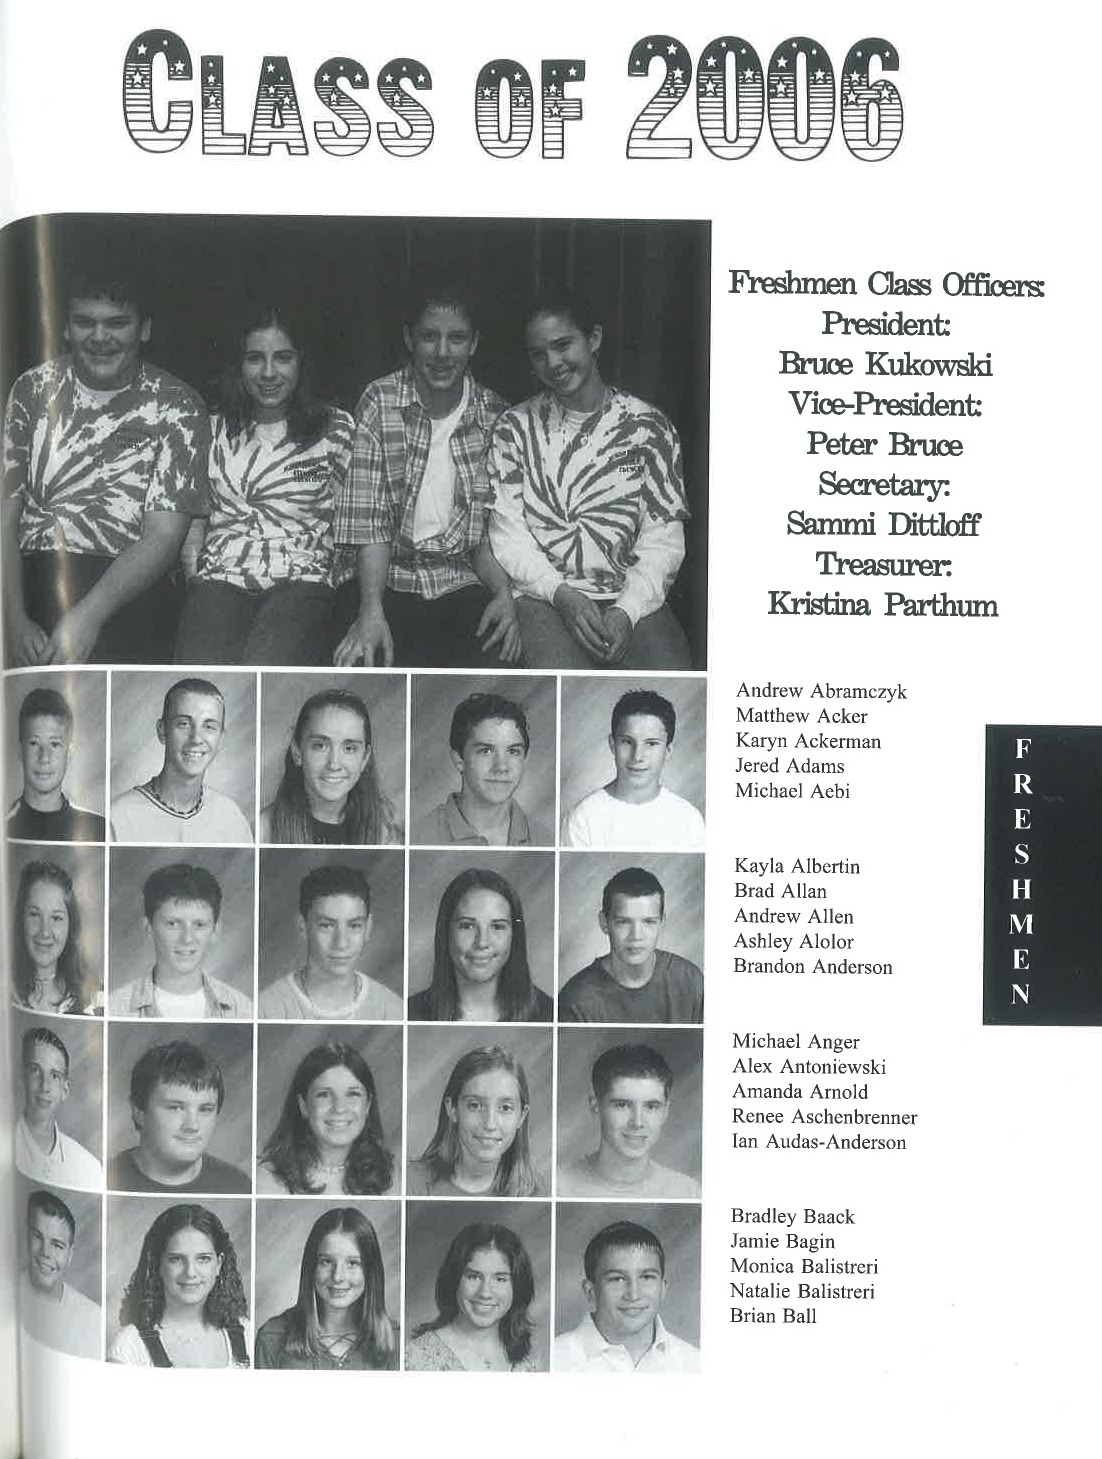 2003_Yearbook_45.jpg